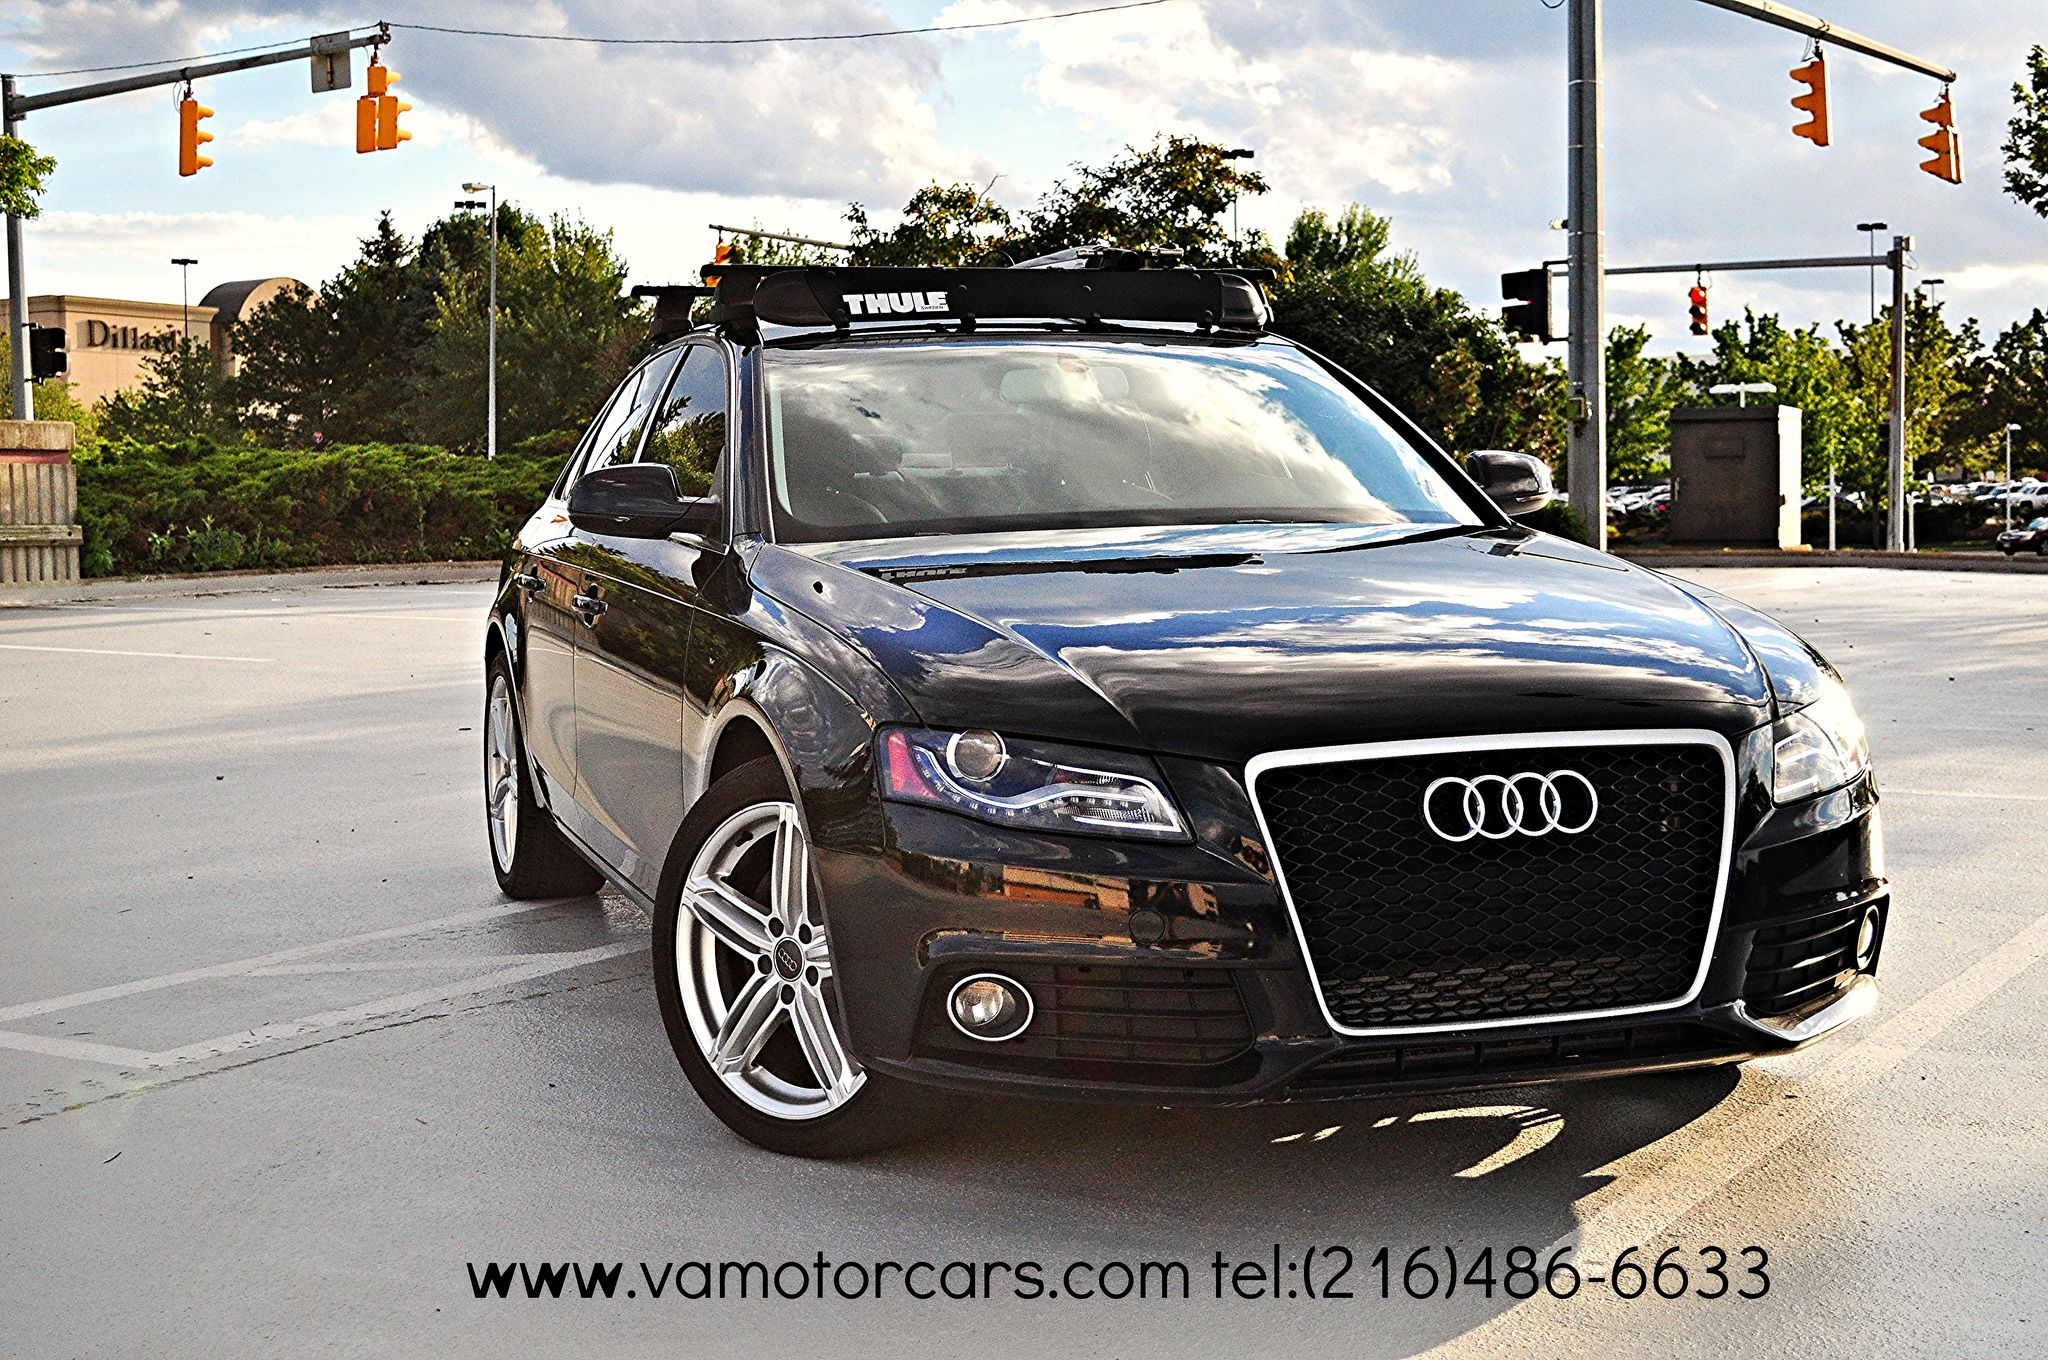 2010 Audi A4 With Thule Roof Rack RS4 Grill #audi #a4 #